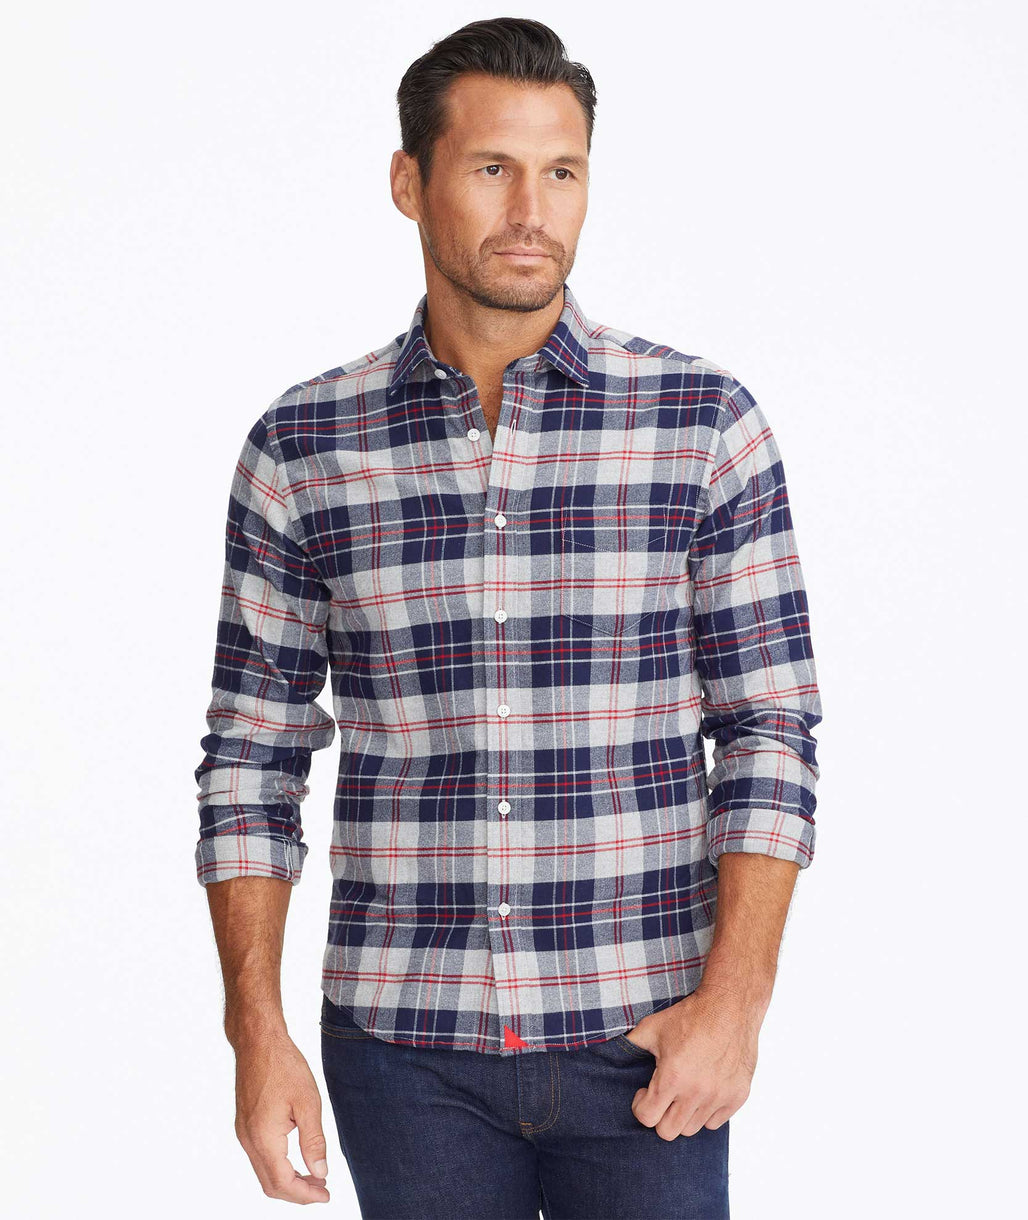 Model wearing a Blue Flannel Campeneta Shirt